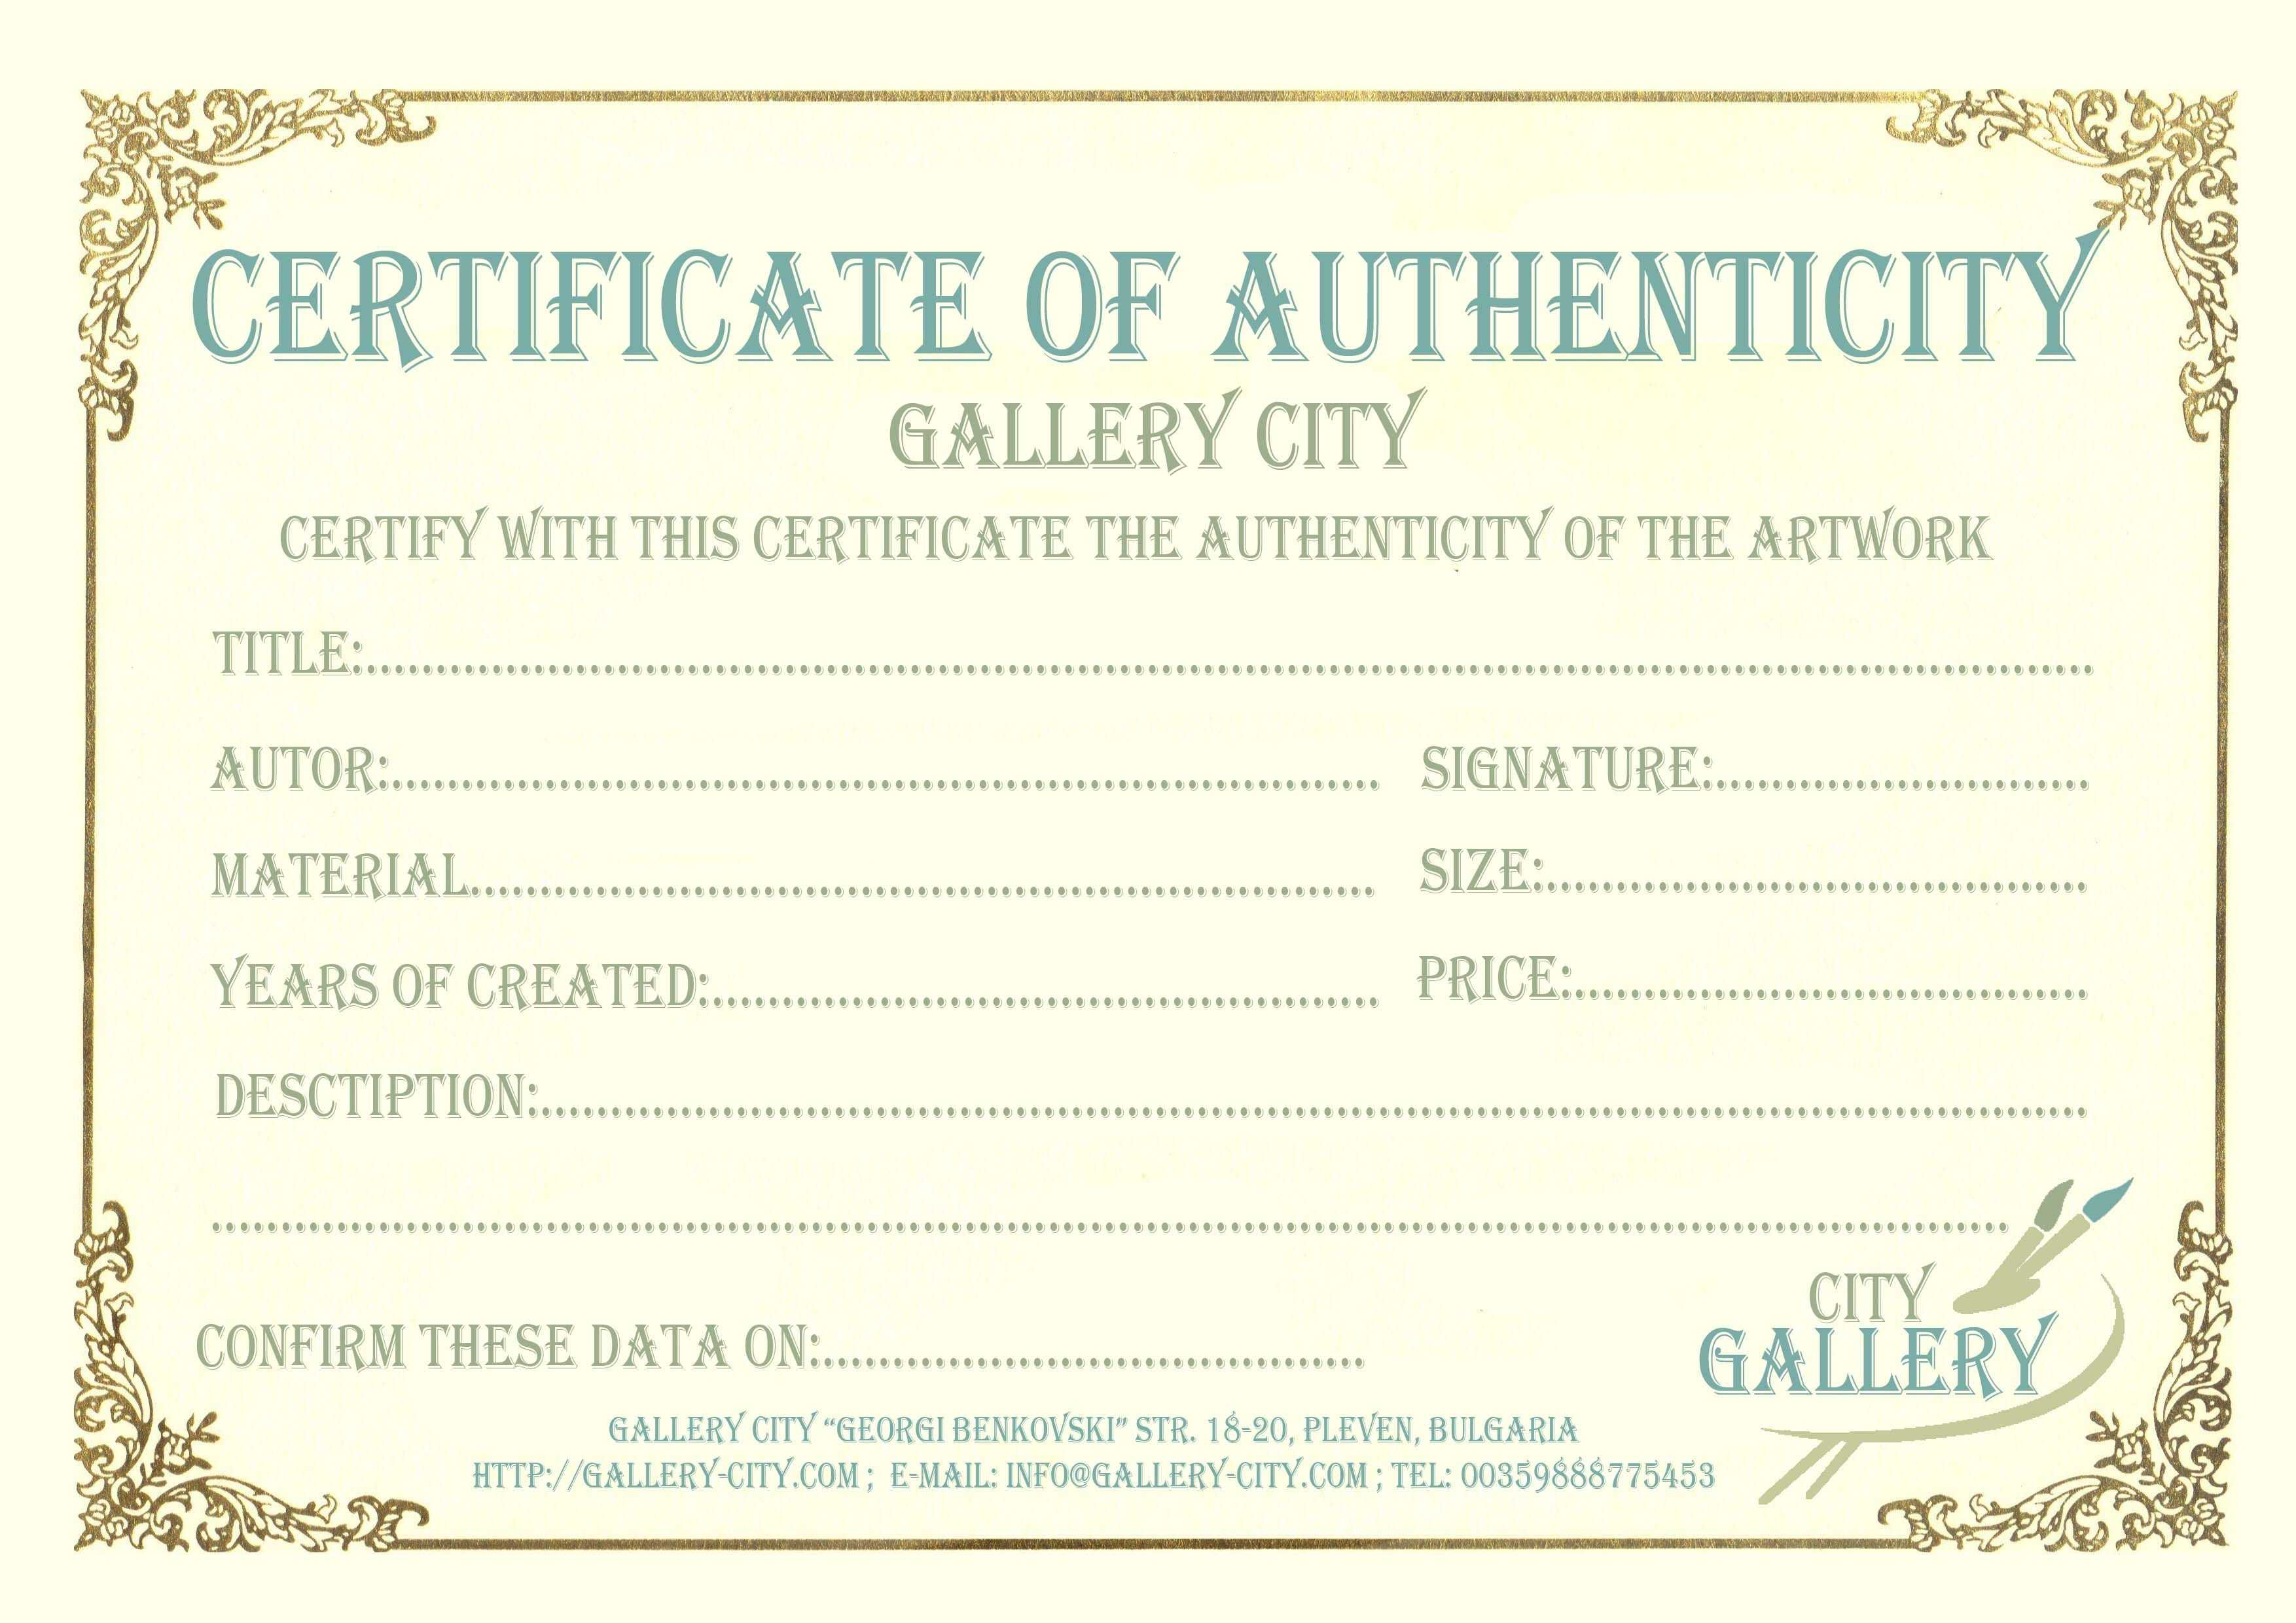 Certificate Authenticity Template Art Authenticity Pertaining To Photography Certificate Of Authenticity Template